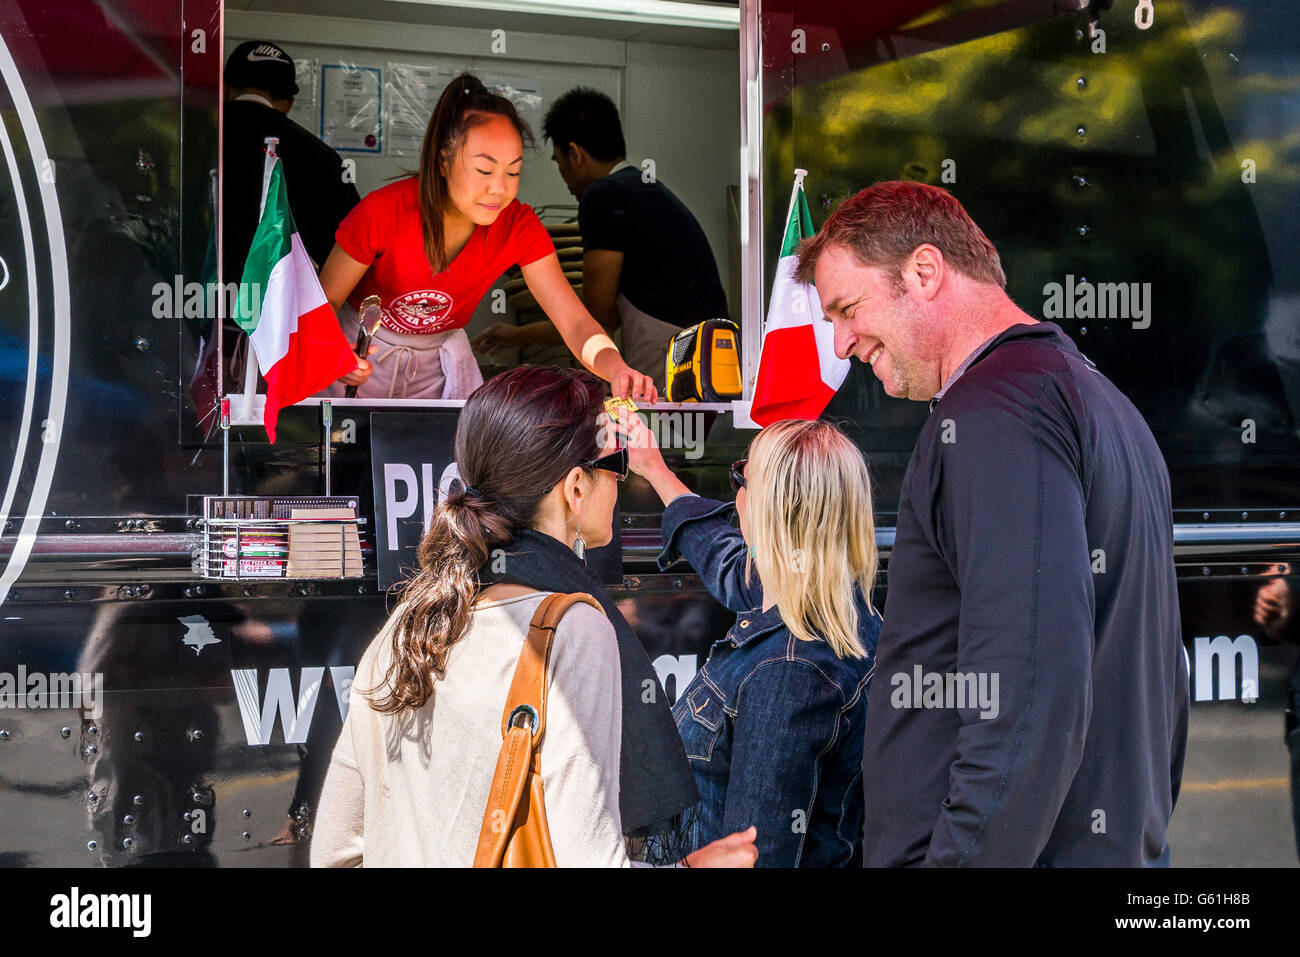 Pizza Food Truck, tIalian Day, Commercial Drive, Vancouver, British Columbia, Canada - Stock Image